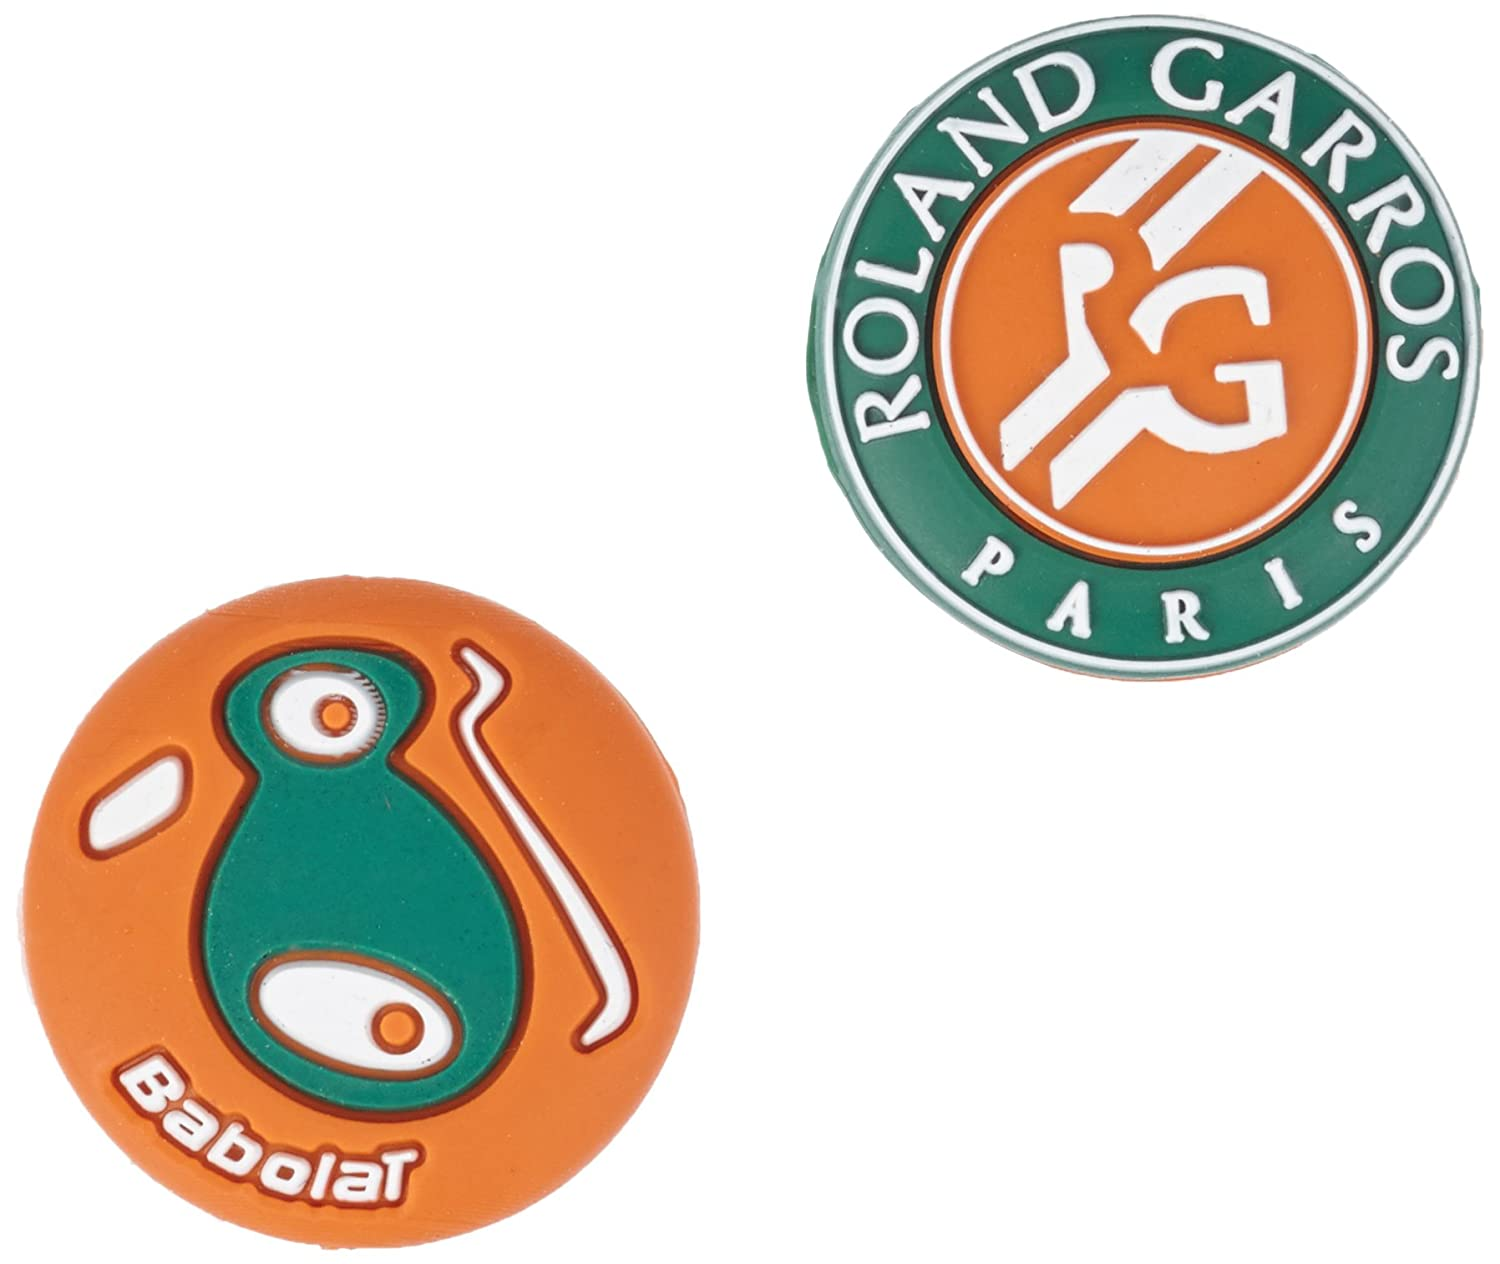 Babolat Antivibrateurs Loony Damp French Open Logo Roland-Garros - Terre battue 700036-134